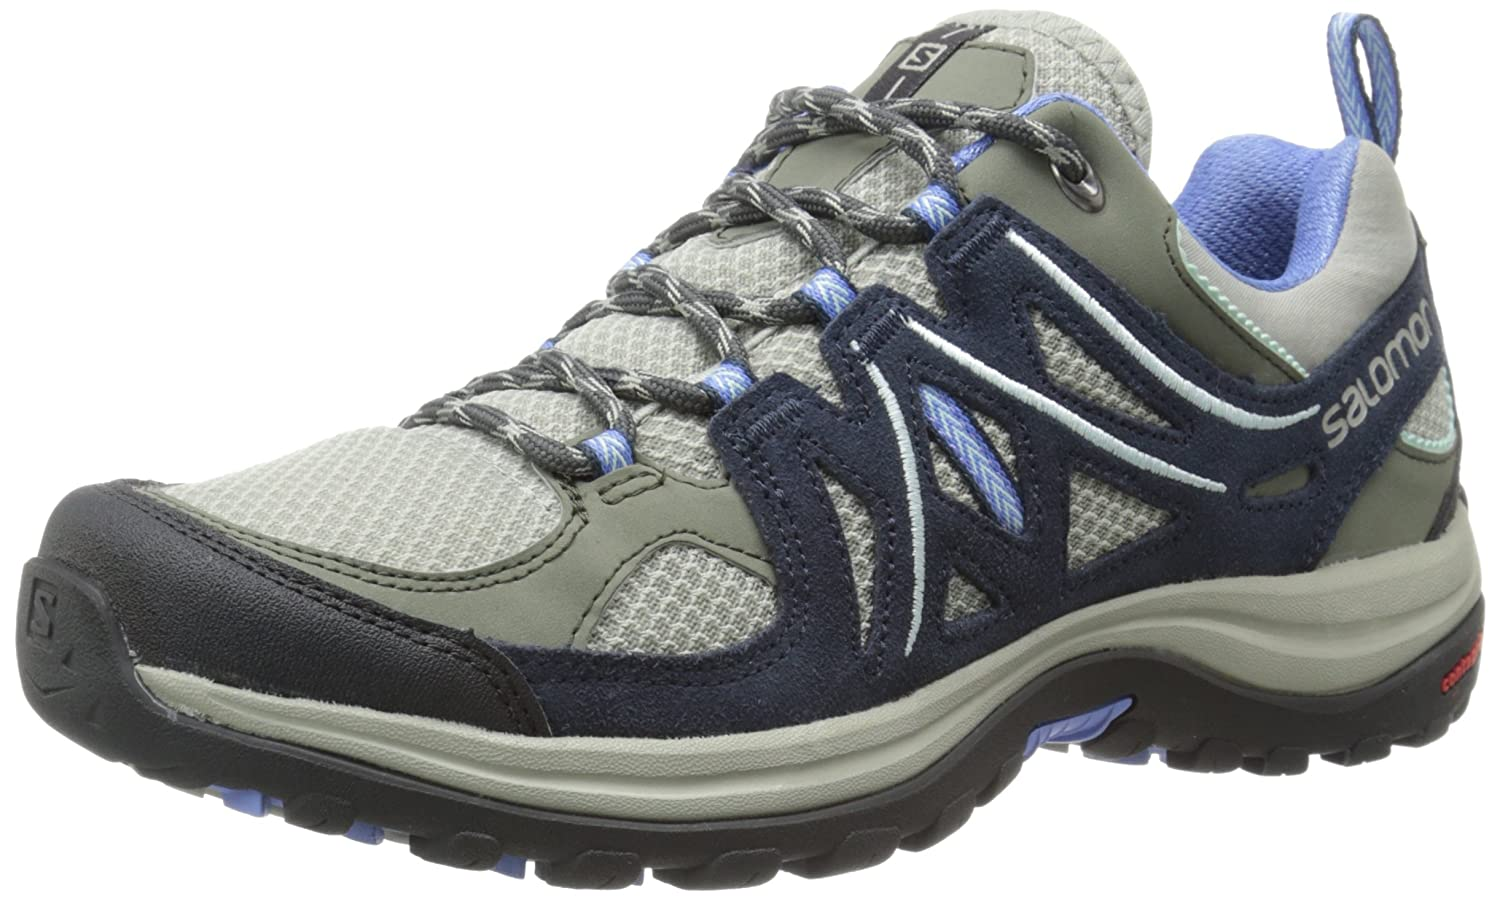 Salomon Women's Ellipse 2 Aero W Hiking Shoe B00ZLMUHKU 9 B(M) US|Titanium/Deep Blue/Petunia Blue